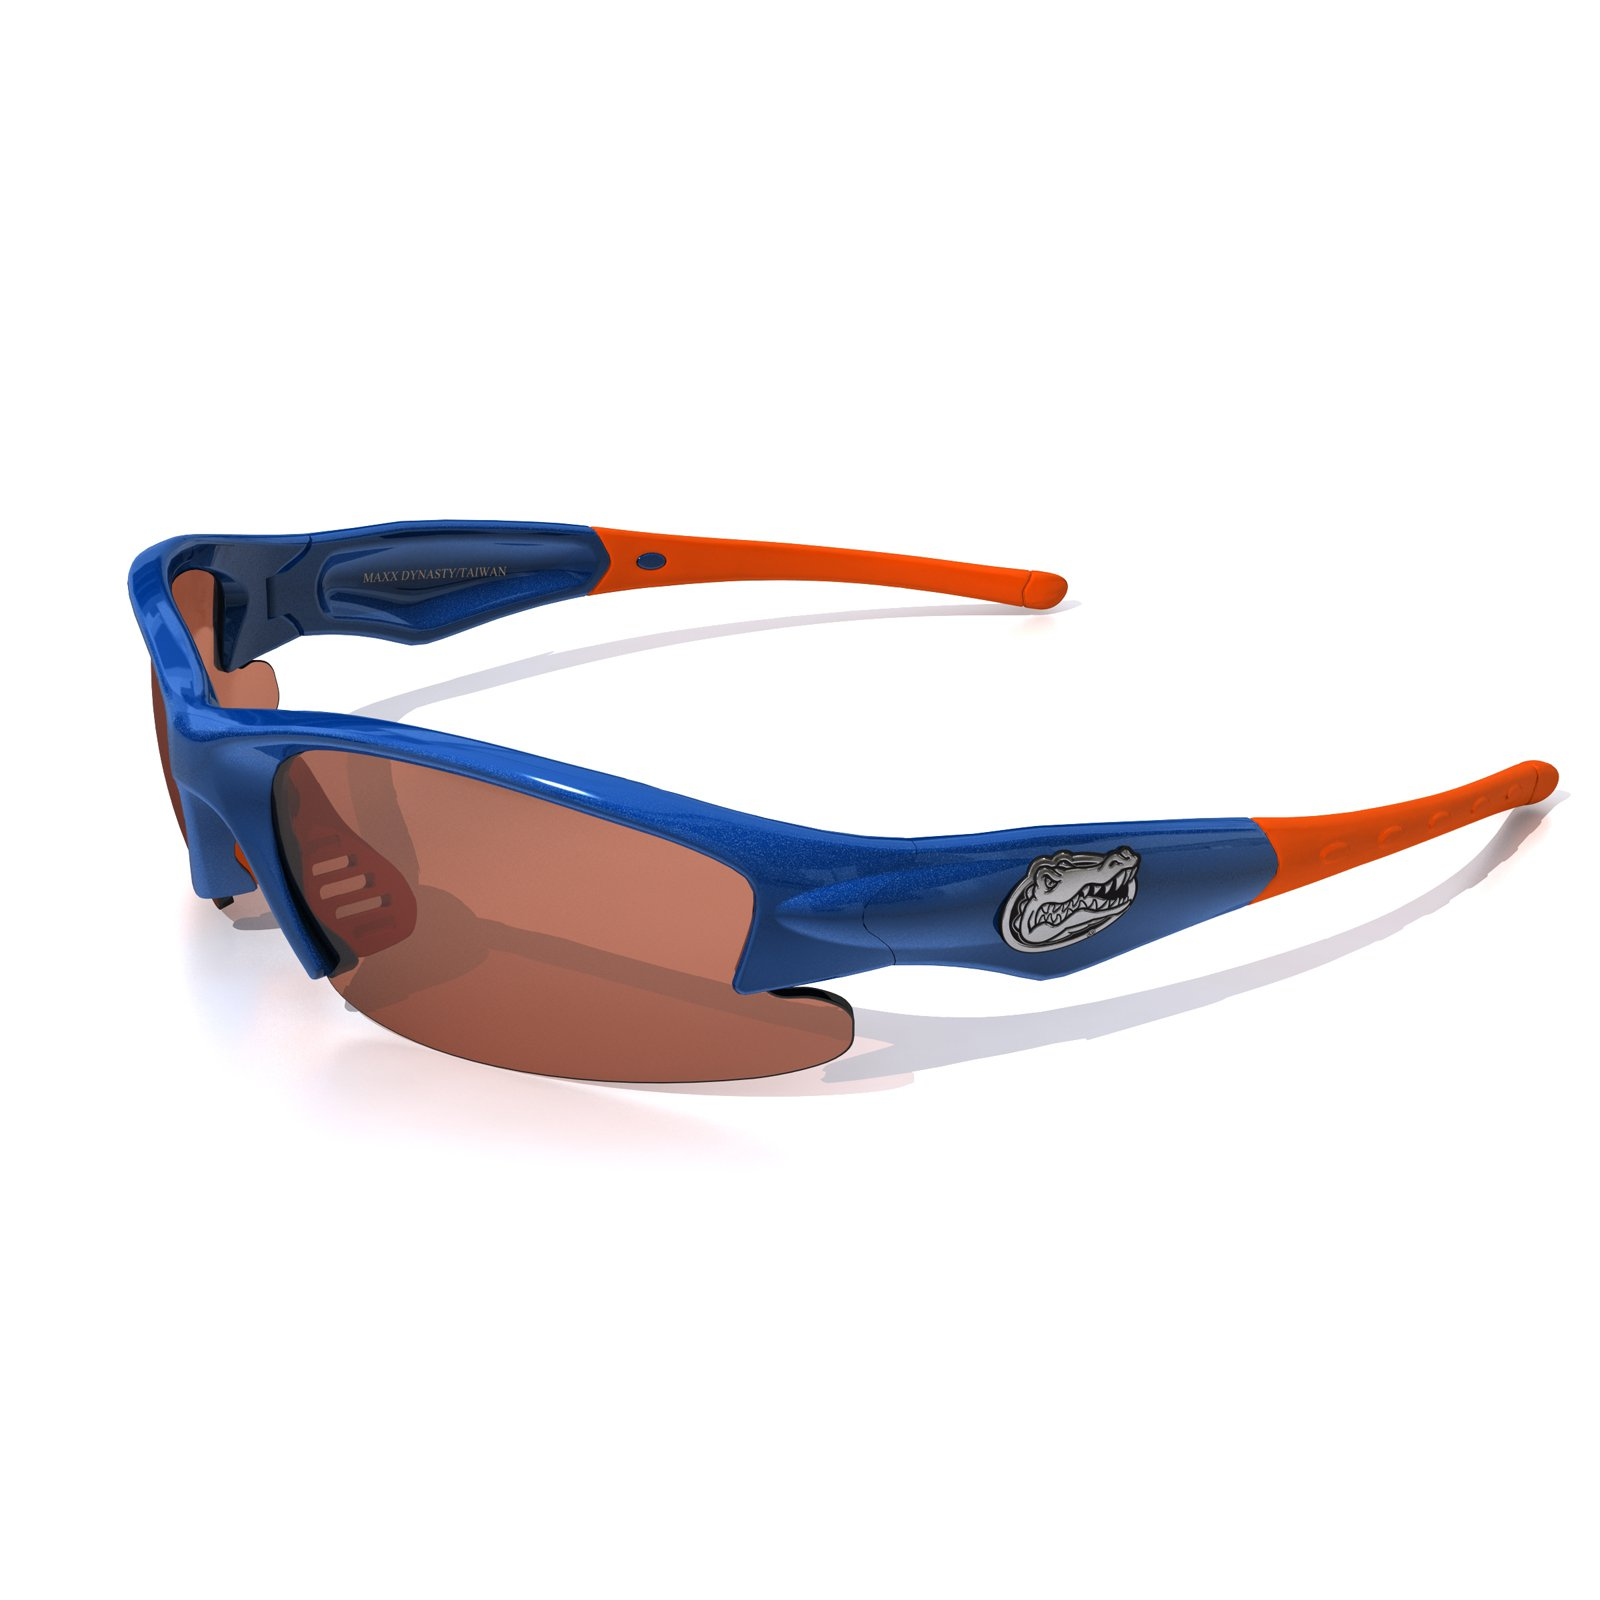 Maxx HD Collegiate Dynasty Sunglasses with FREE Microfiber Bag